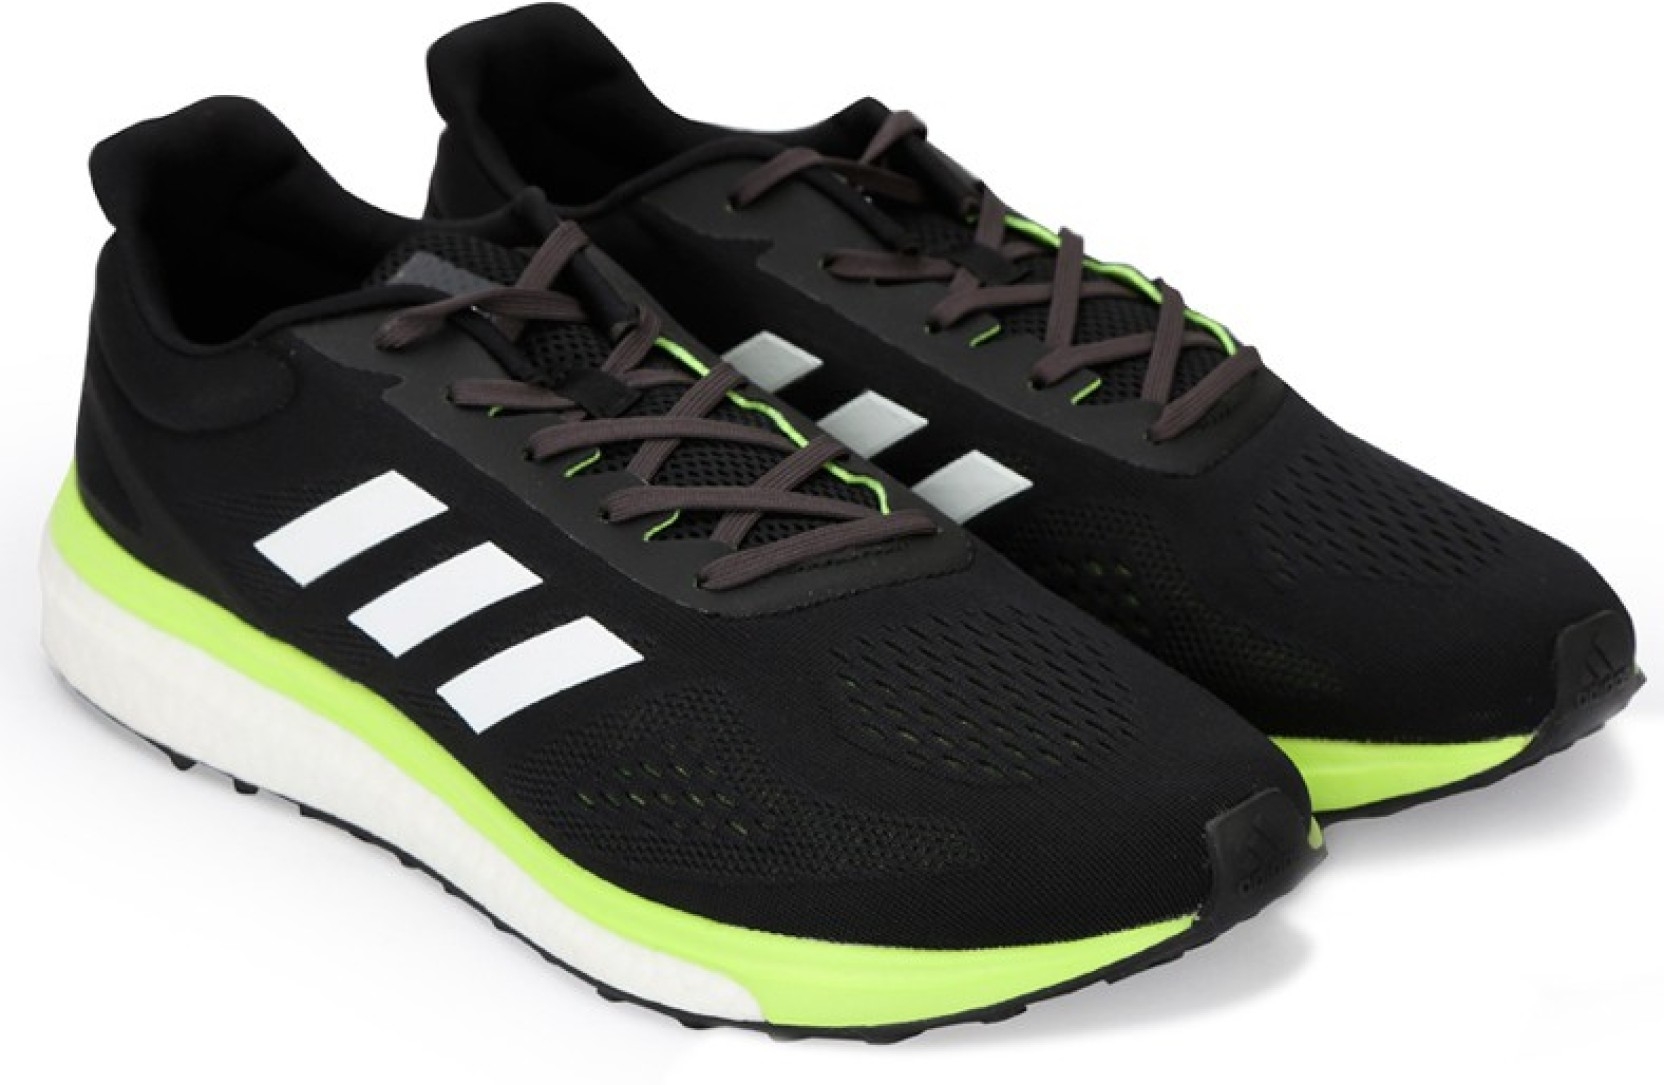 huge selection of 6bd9f 7f060 ADIDAS RESPONSE LT M Running Shoes For Men (Black, Green, White)